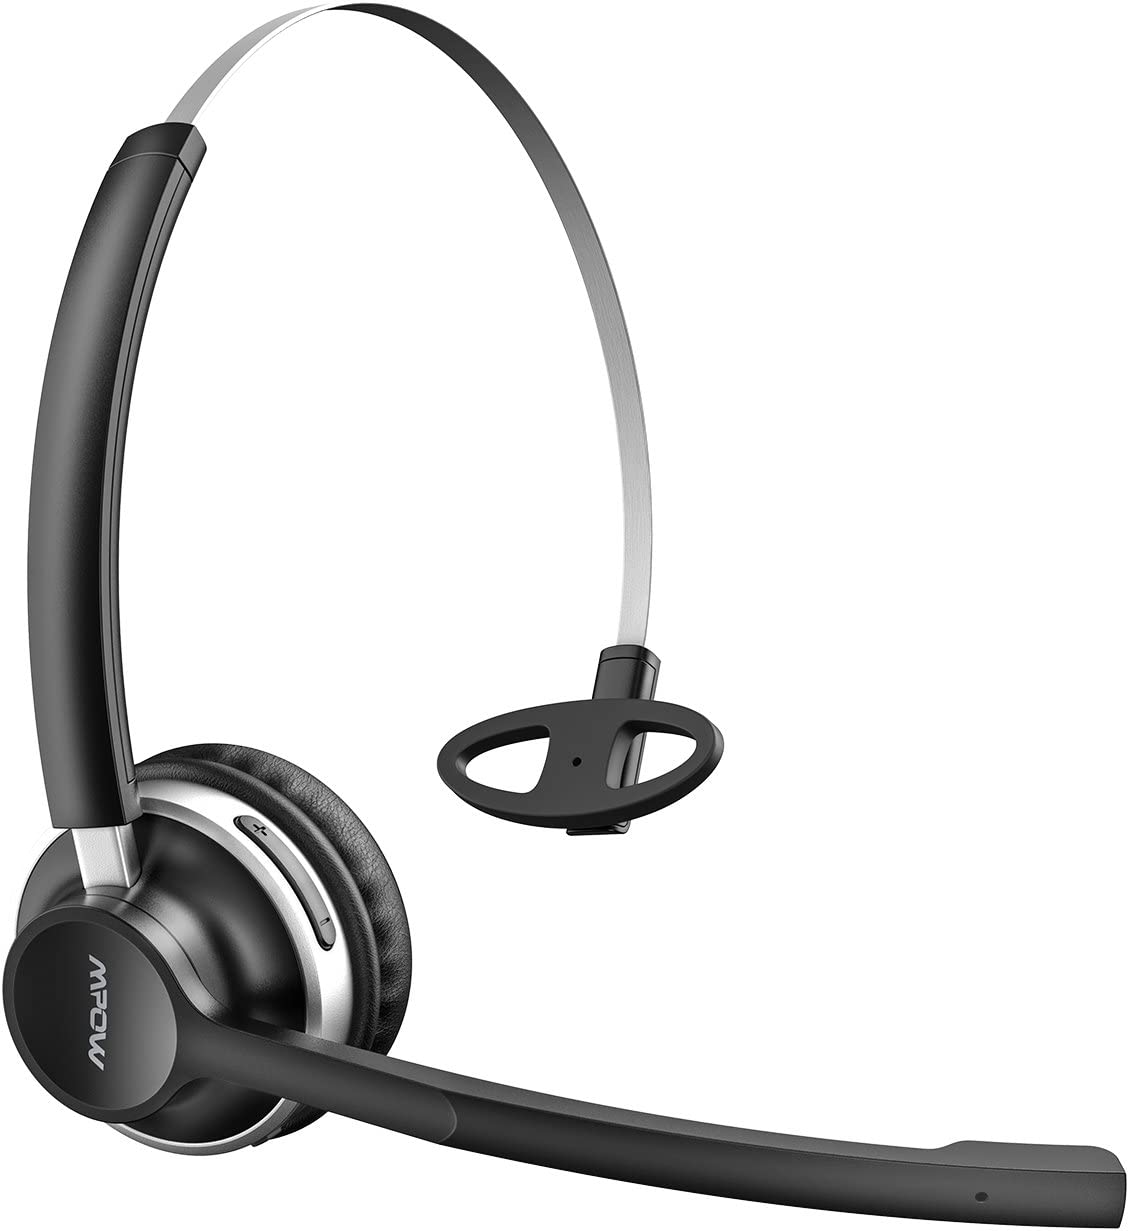 Mpow Trucker Bluetooth Headset, Dual Microphone Noise Canceling Office Headsets with Wired Mode, Lightweight On Ear Truck Driver Headset, Handsfree Car Bluetooth Headphones for Cell Phone/Call Center